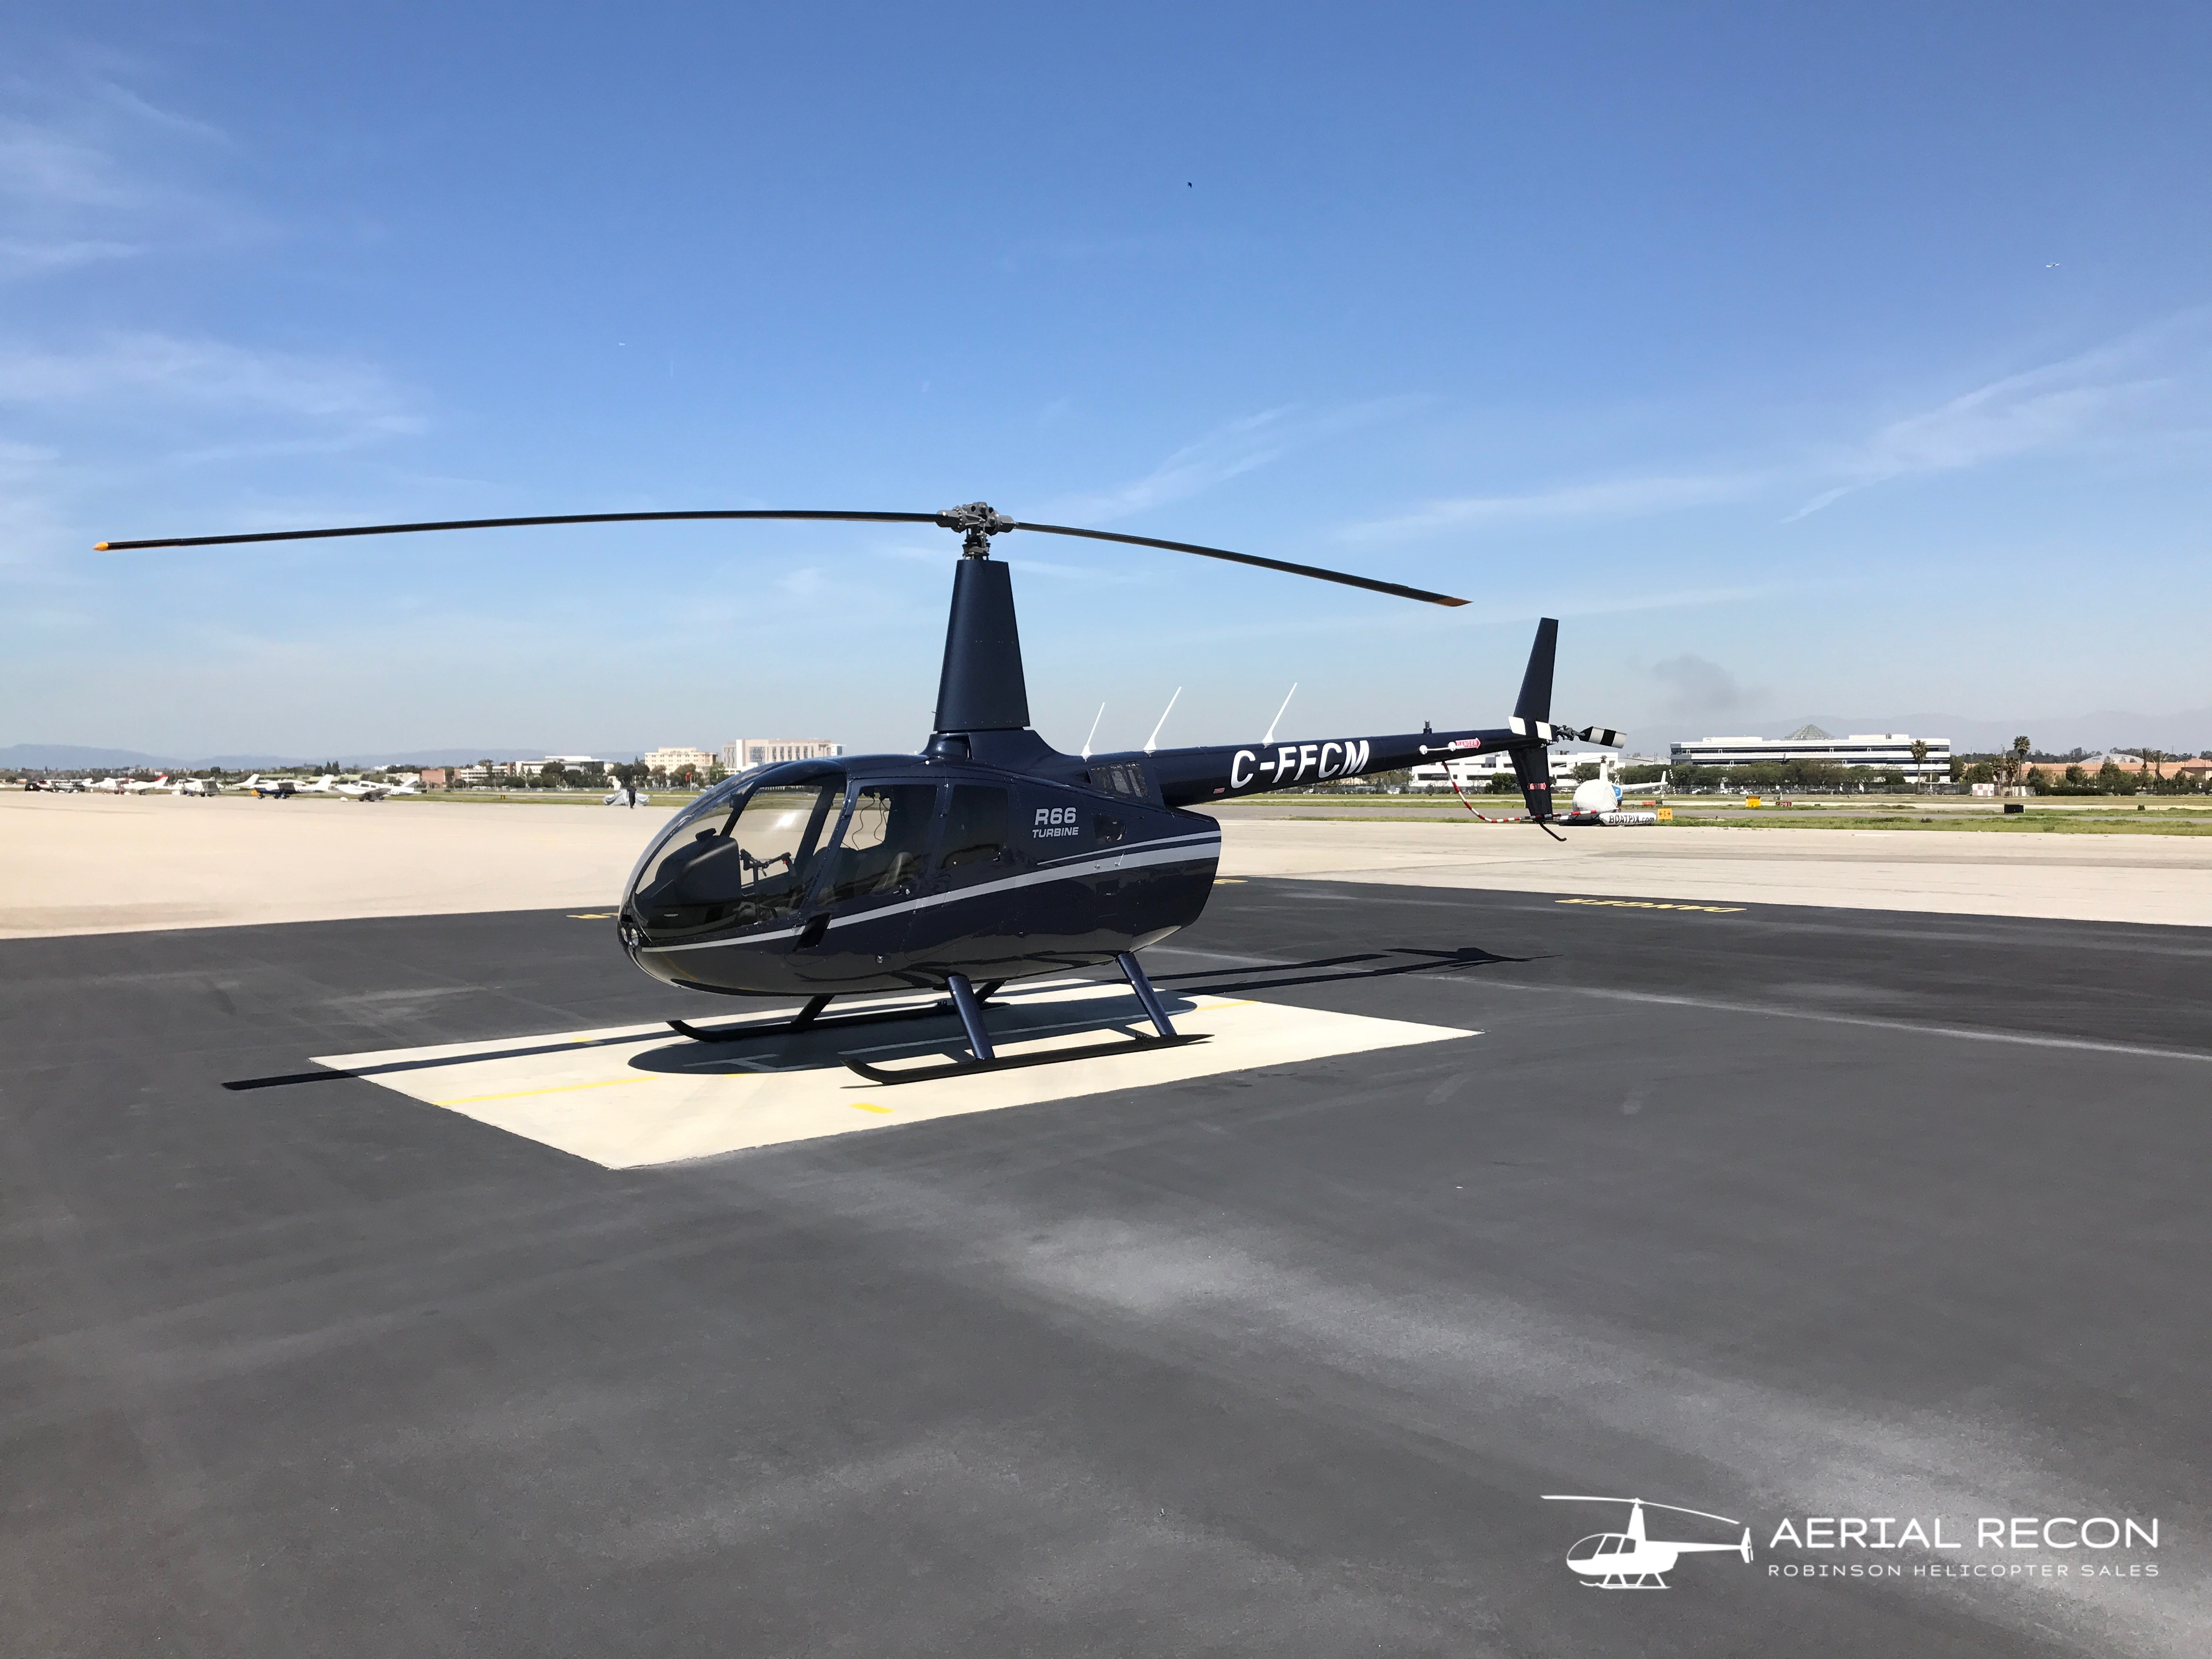 R66 Robinson Helicopter : Aerial Recon Ltd | Robinson Helicopter Dealer